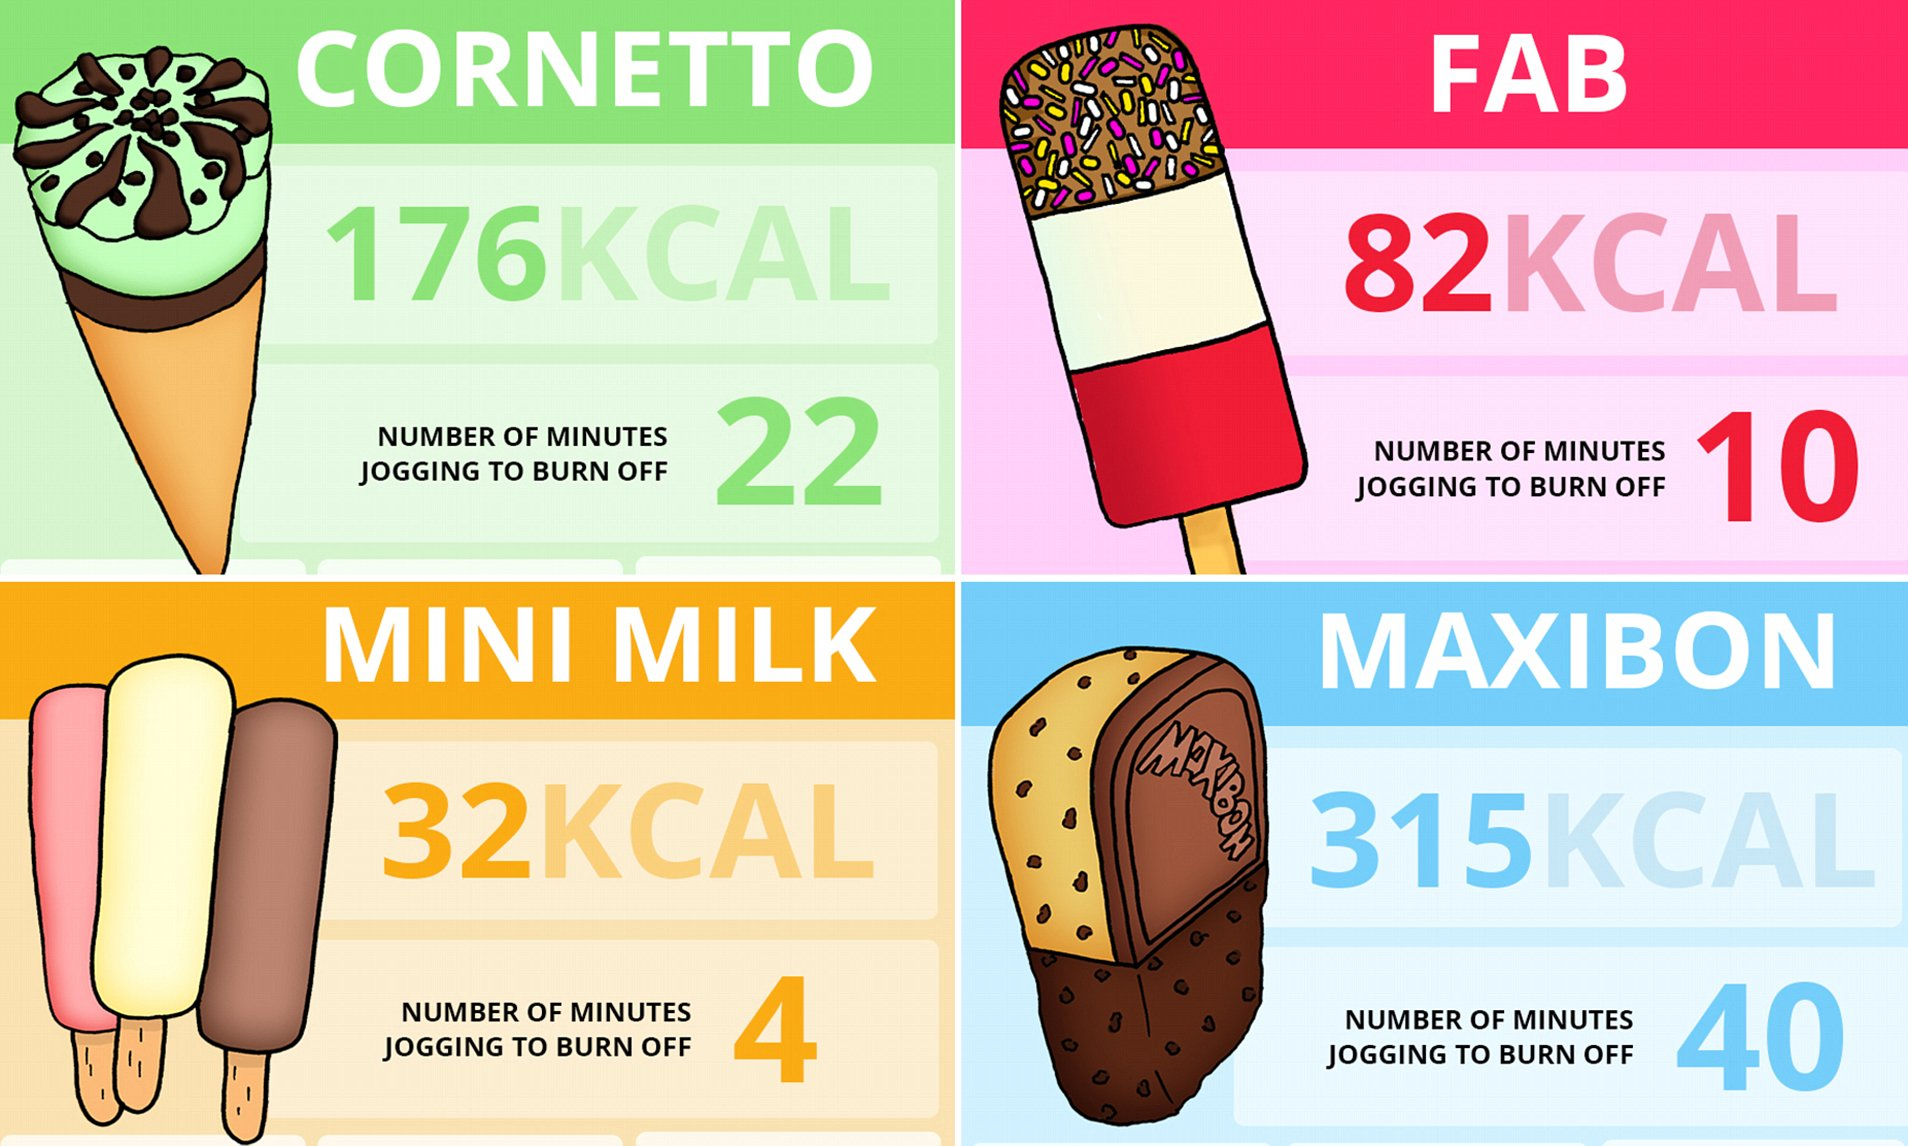 Sportsshoes shows how long it takes to burn off ice cream.